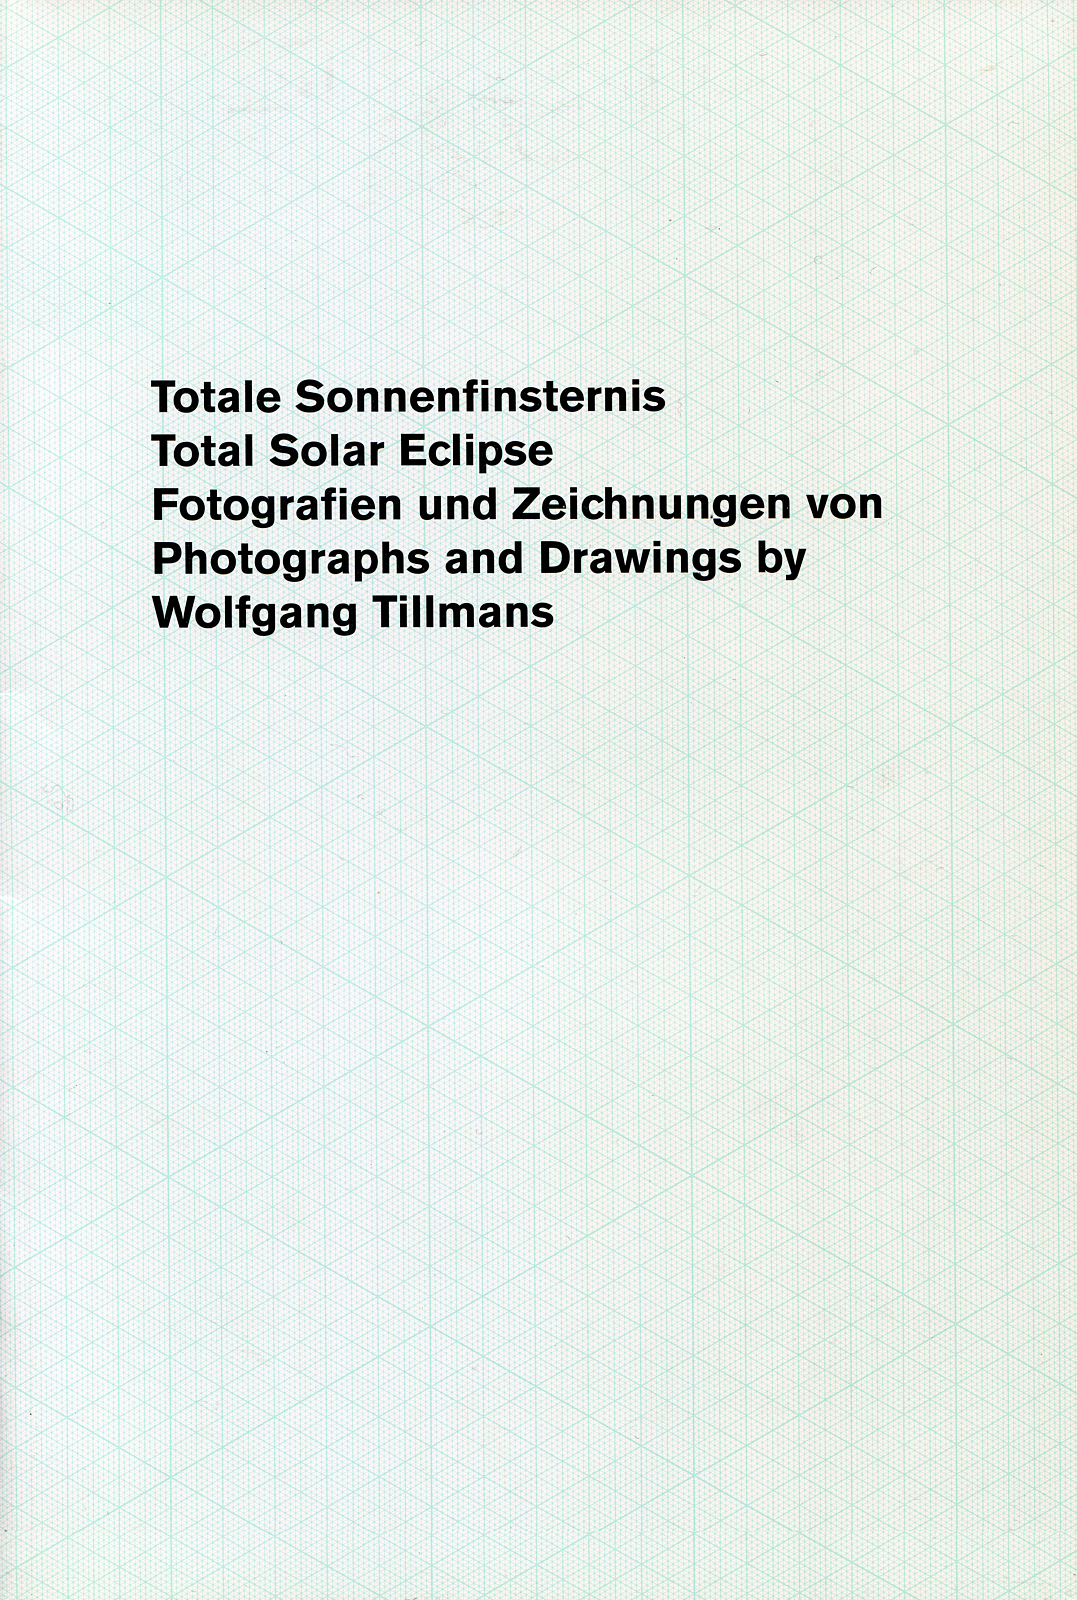 "Wolfgang Tillmans – ""Total Solar Eclipse / Totale Sonnenfinsternis"" 1999, 48 pages, fully illustrated, Owrps, 30.2 x 20.5 cm out of print – Artist book published on the occasion of Wolfgang Tilmans' exhibition at our gallery in May 1999. The book includes photographs, image material, graphics and texts that the artist produced or assembled on the phenomenon of solar eclipses."